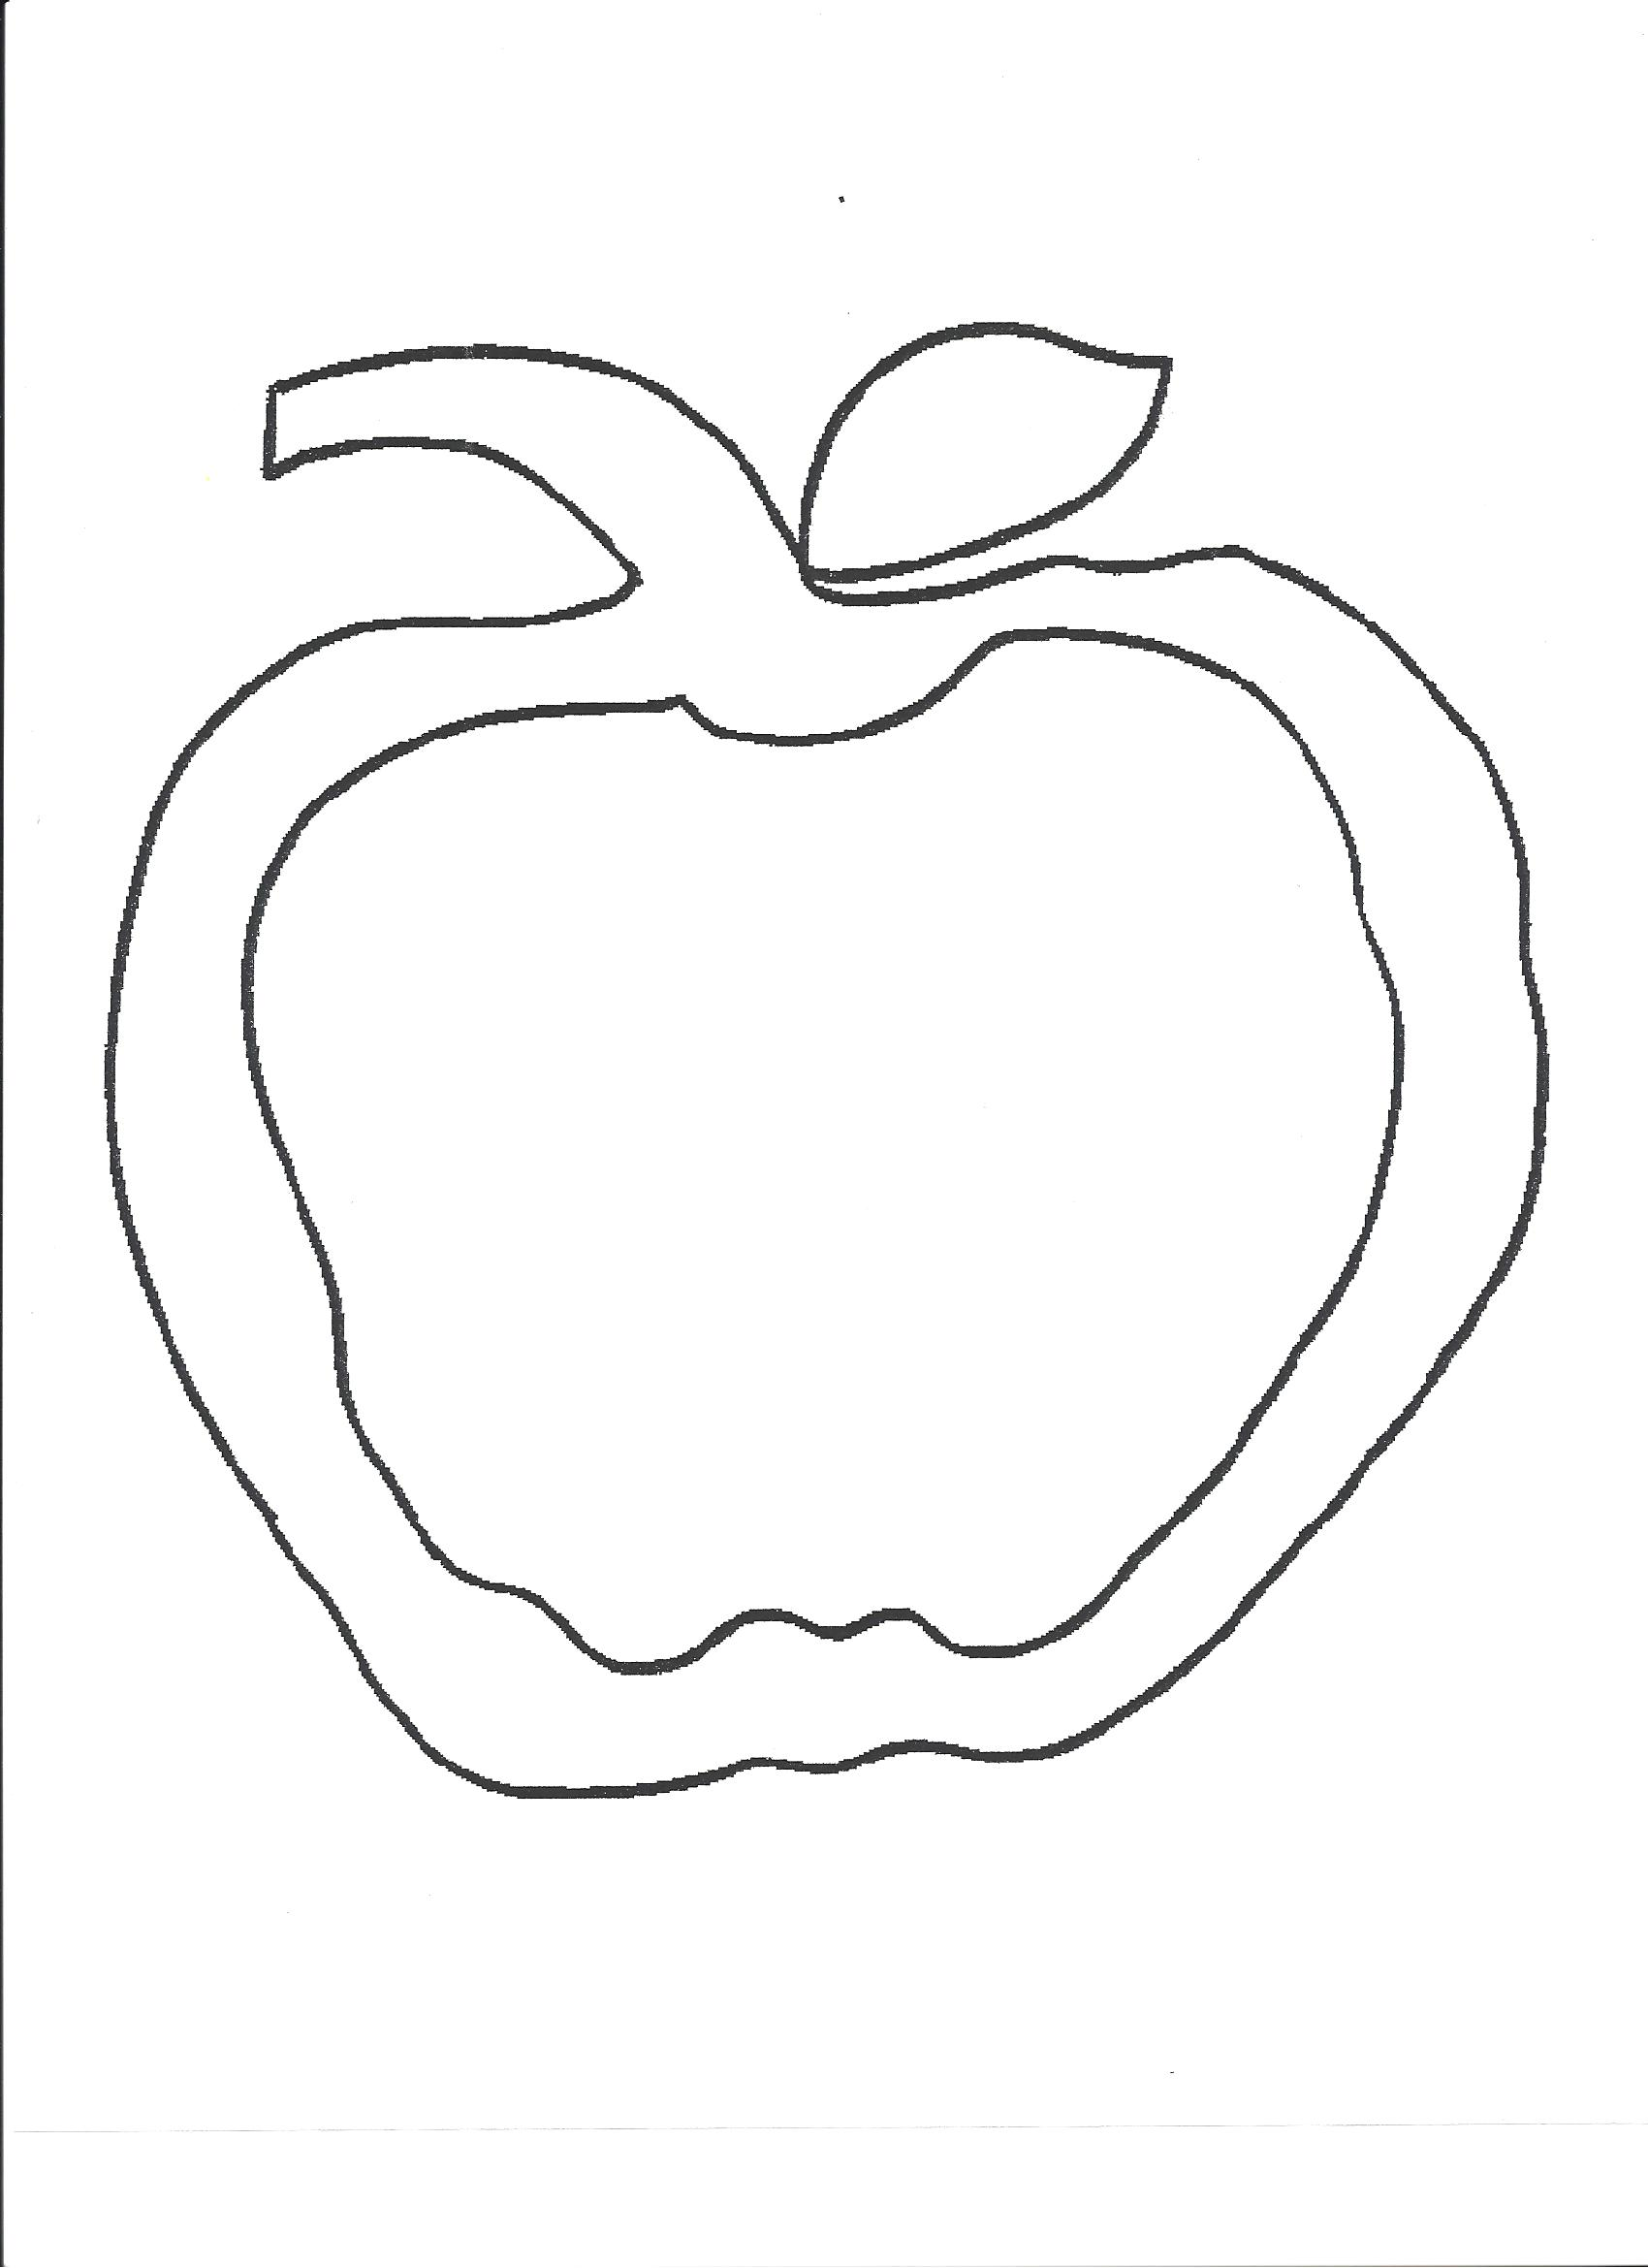 Free Apple Leaf Template, Download Free Clip Art, Free